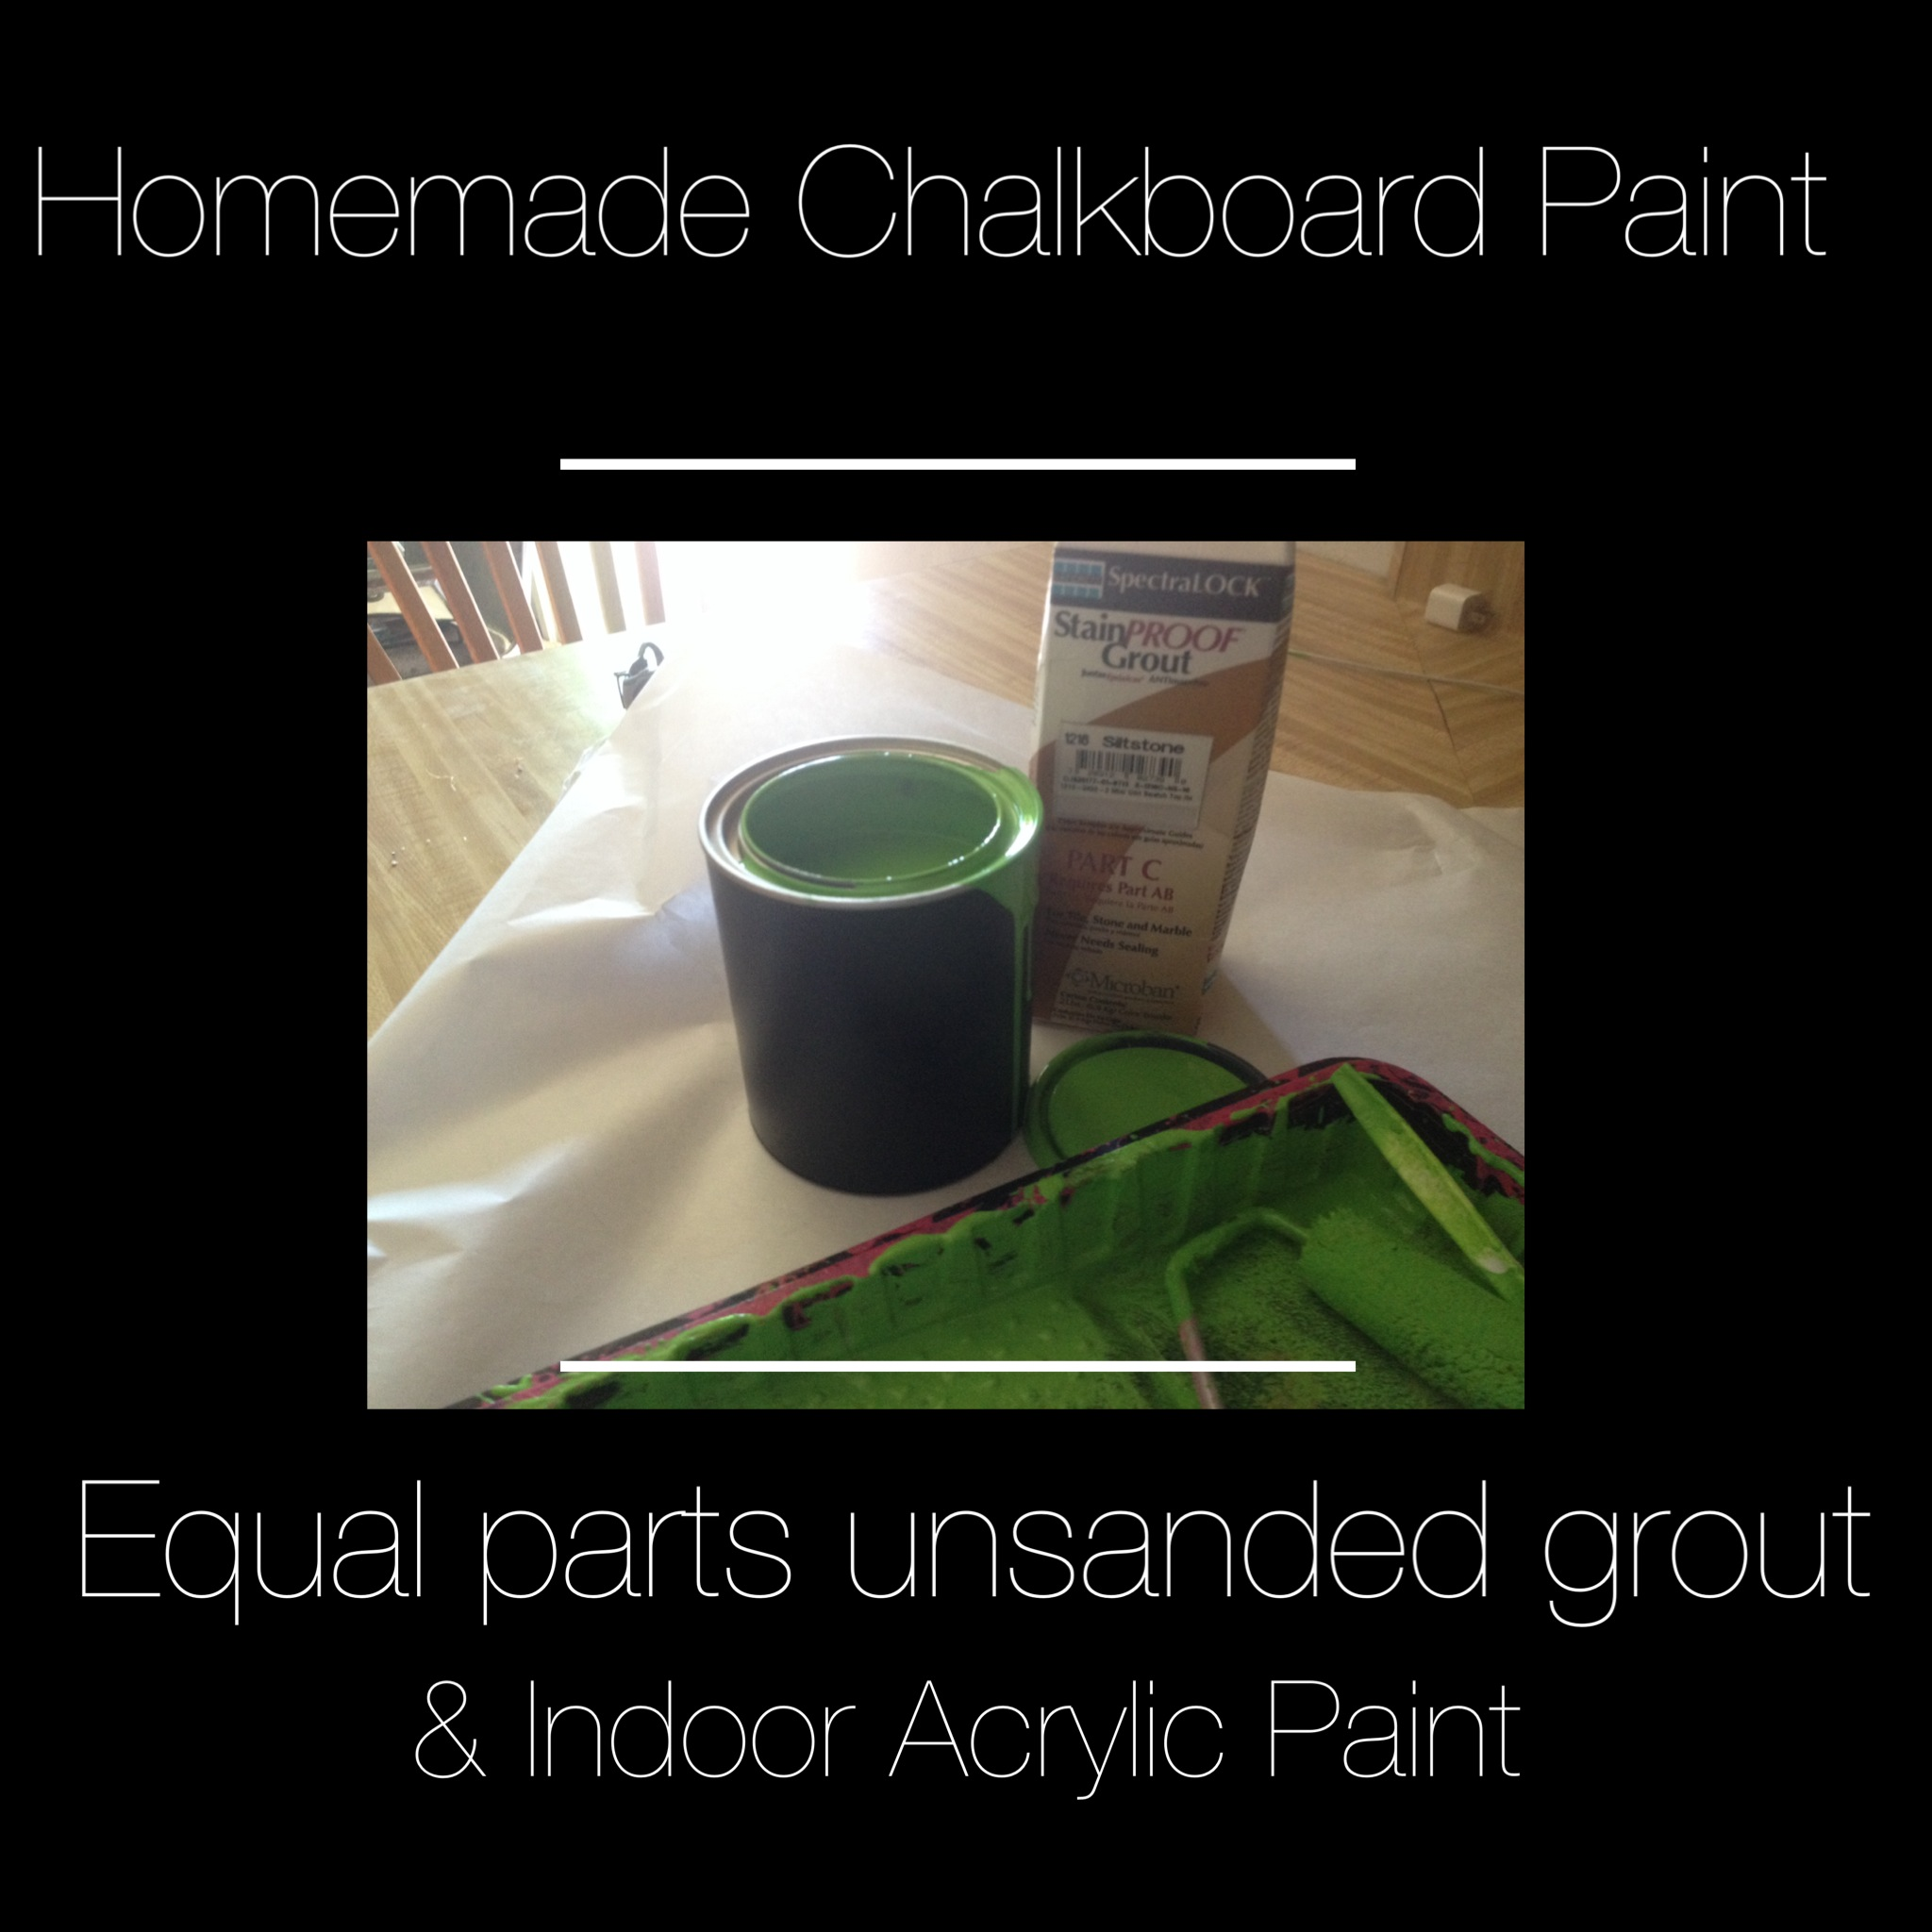 3 Secrets to Painting Built-in Furniture + Homemade Chalkboard Paint